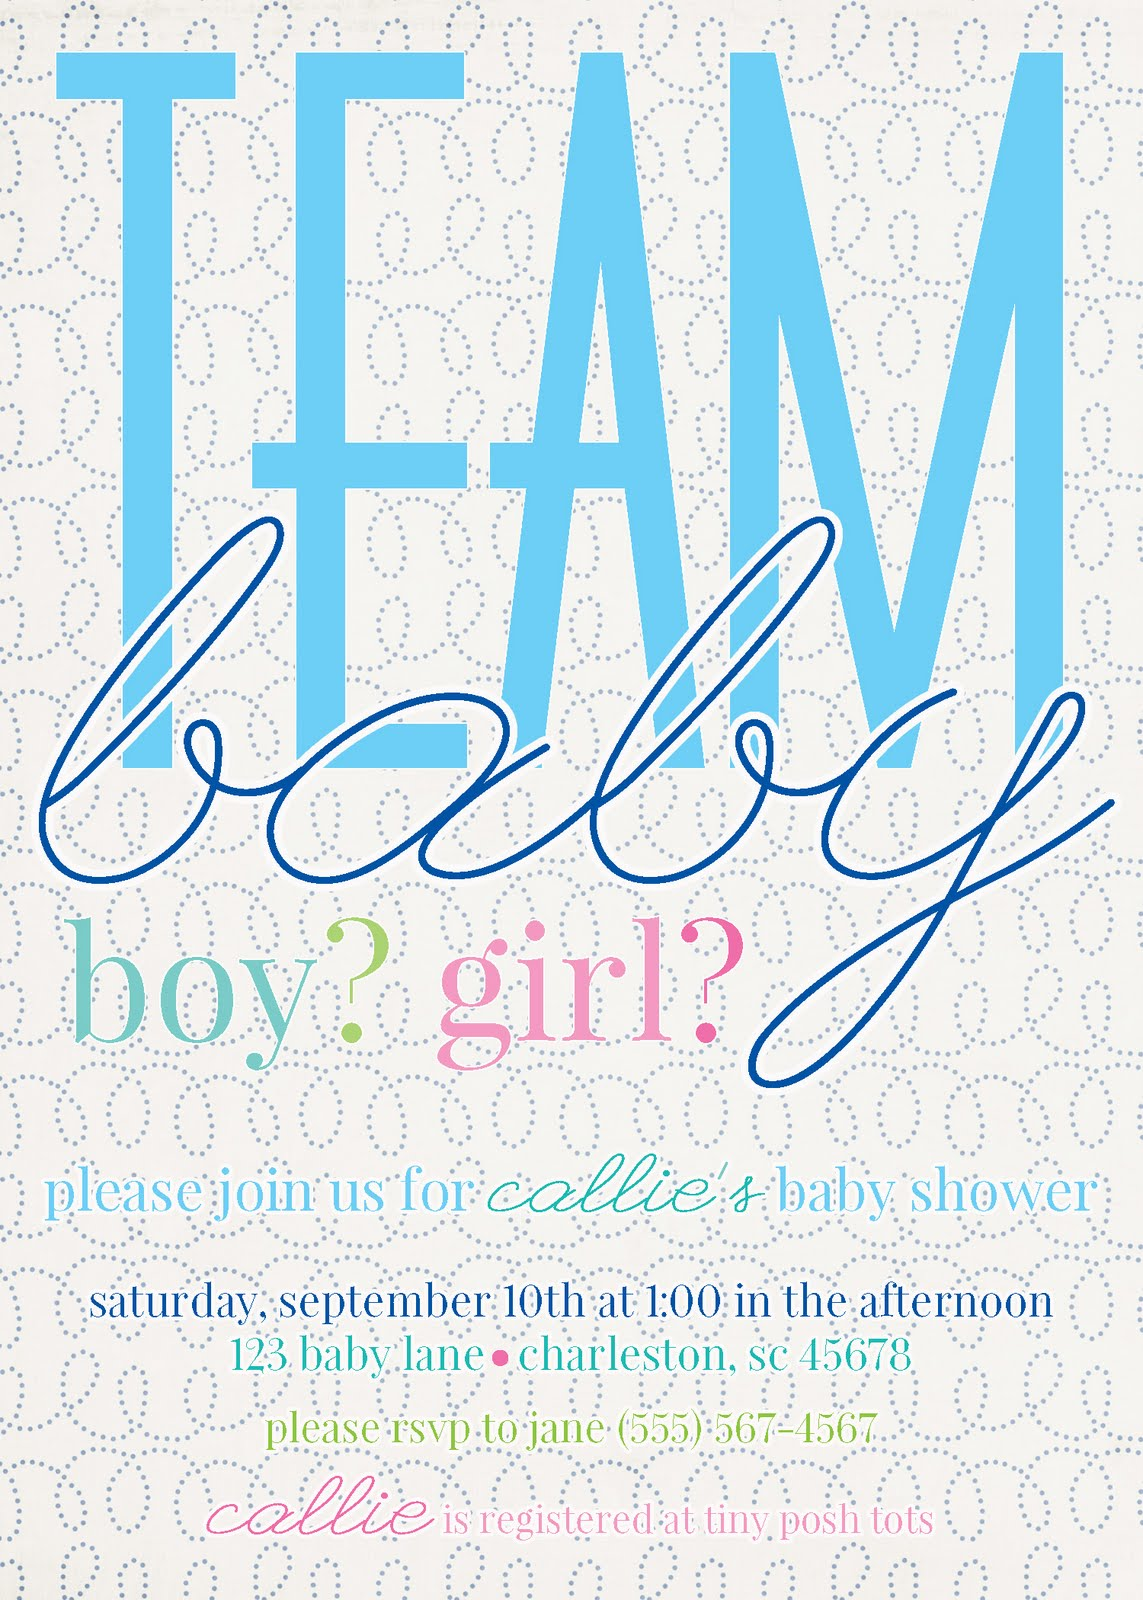 party box design gender reveal baby shower invitations